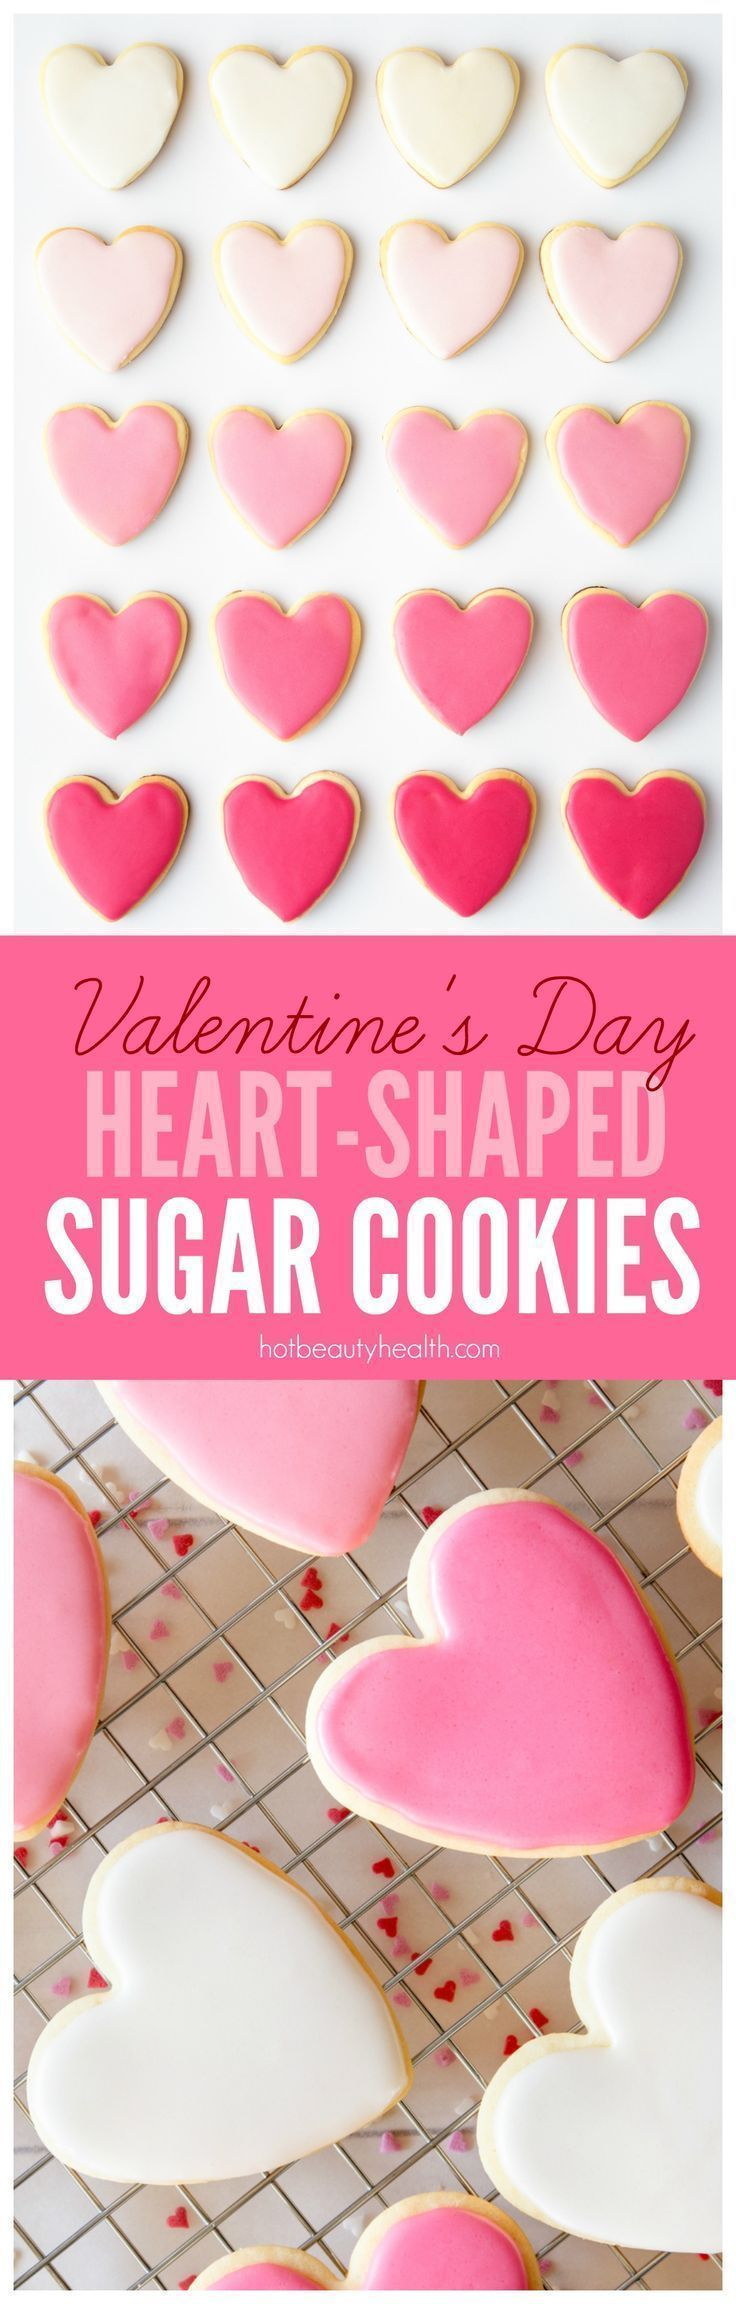 Valentine s Day Heart Shaped Sugar Cookies Recipe Valentine s Day Heart Shaped Sugar Cookies Recipe